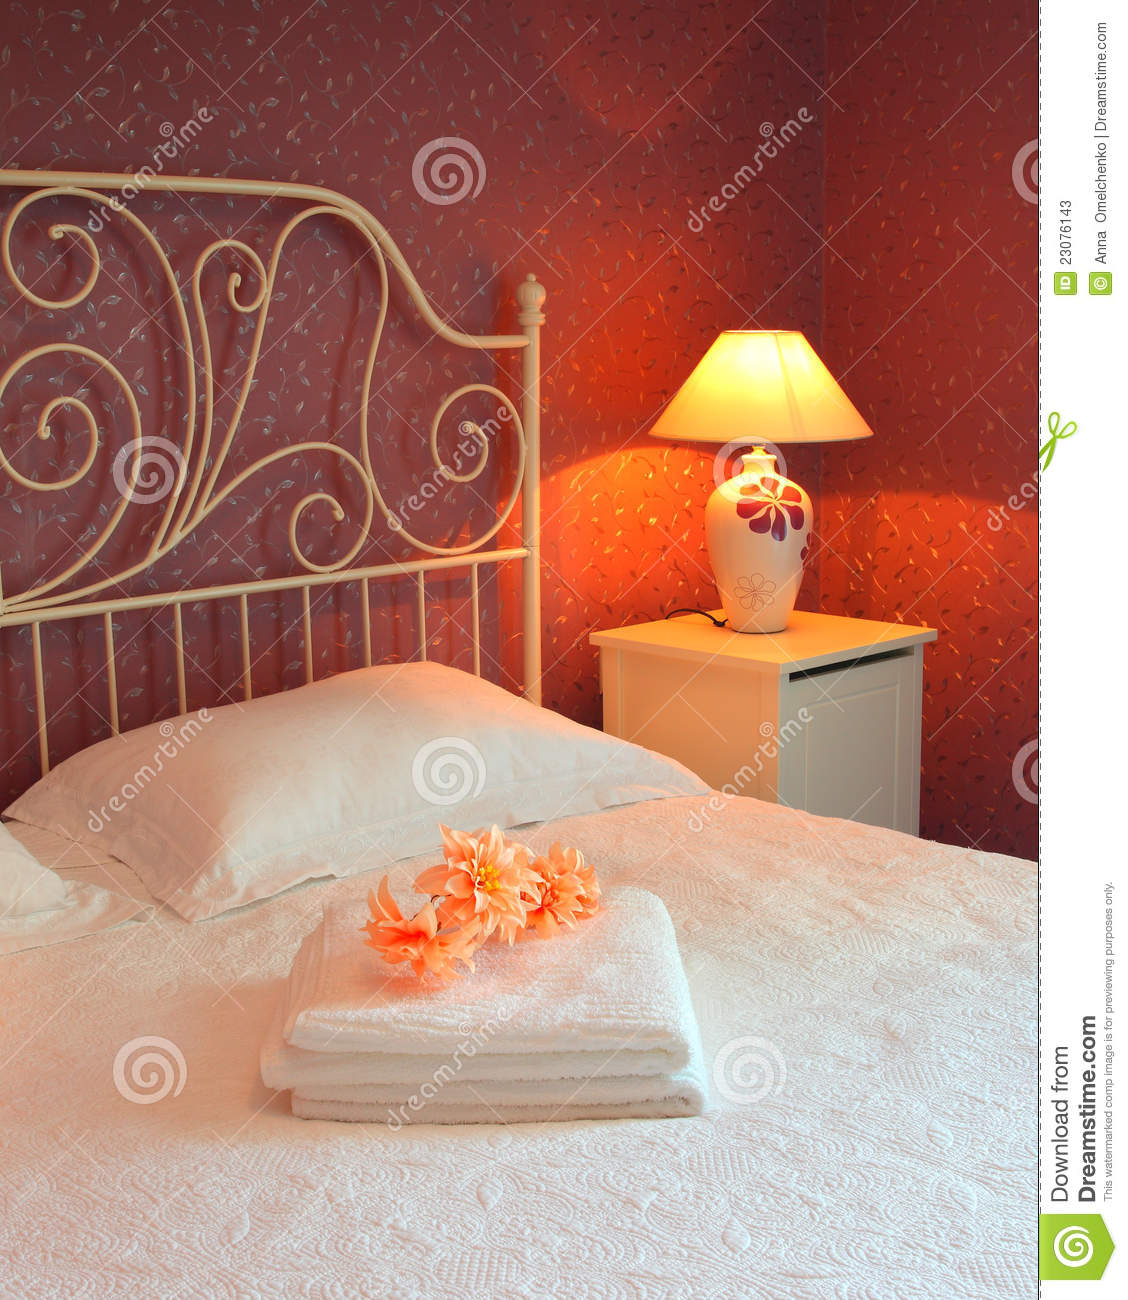 Romantic bedroom interior stock photos image 23076143 - Chambre a coucher romantique ...